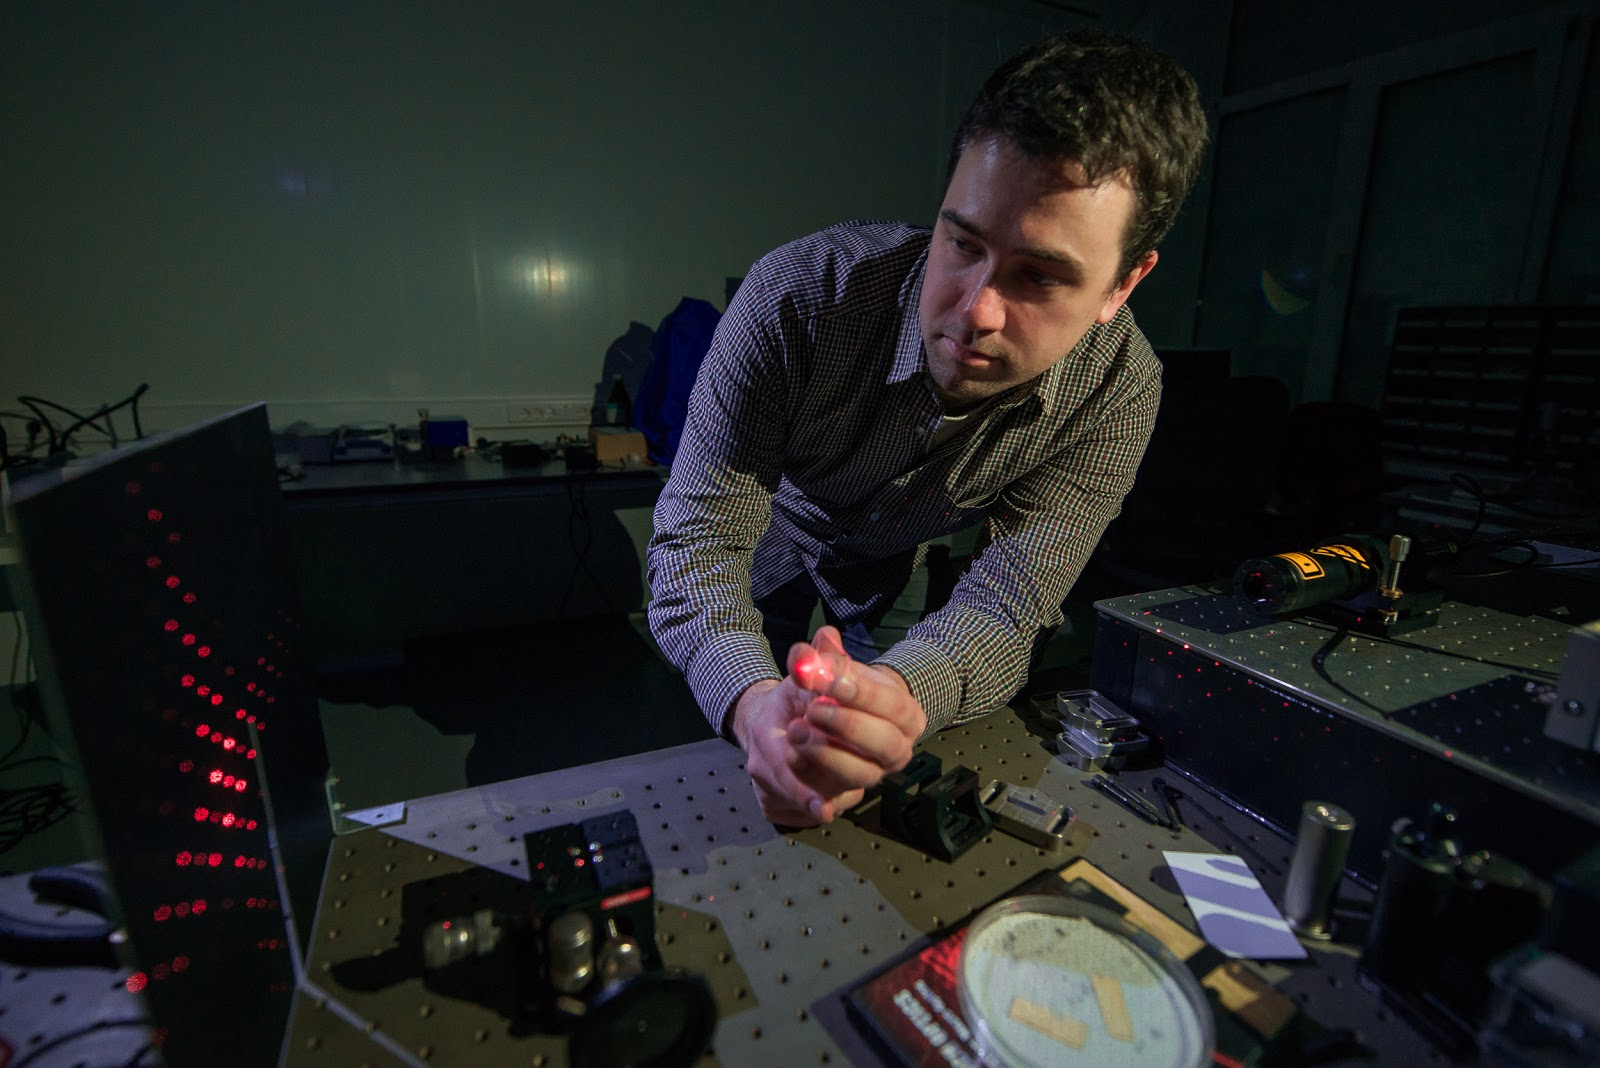 Alexey Shcherbakov demonstrates the diffraction pattern from a two-dimensional grating